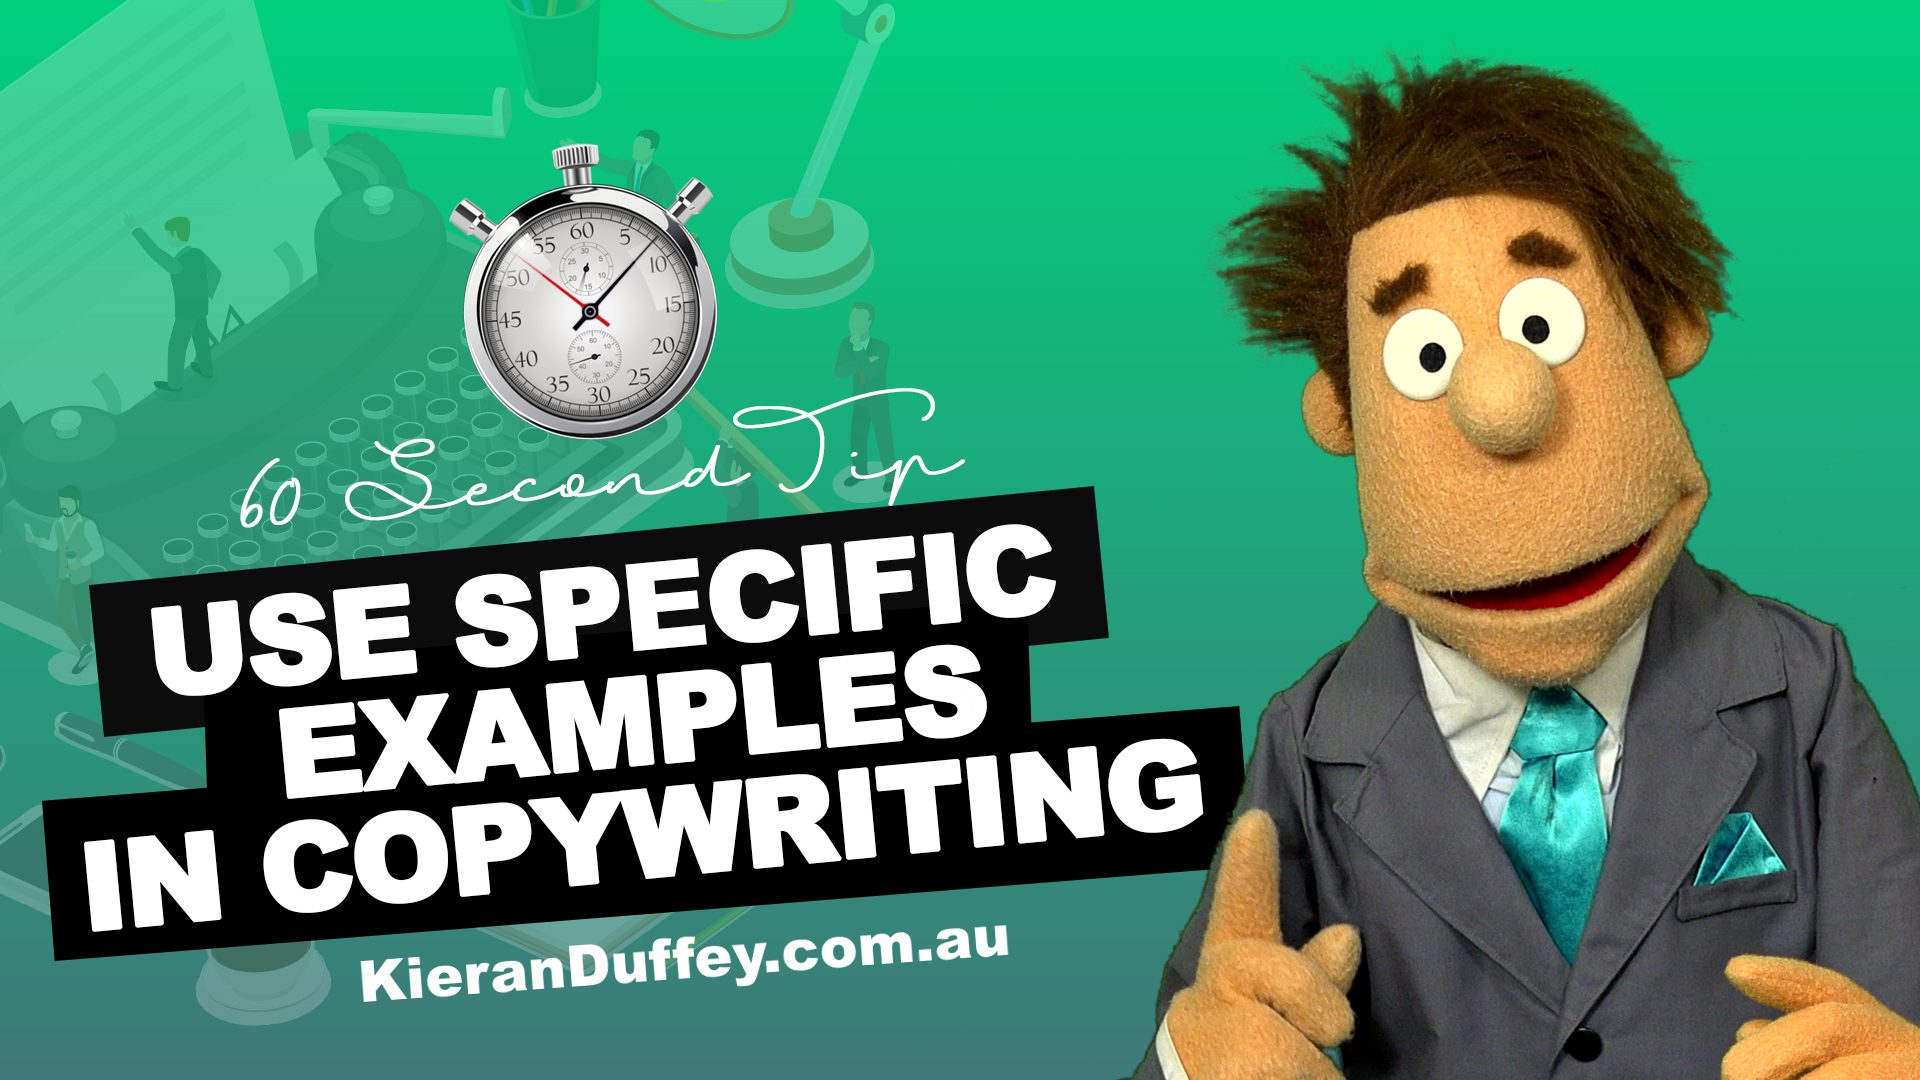 Video stressing the importance of using specific examples in copywriting